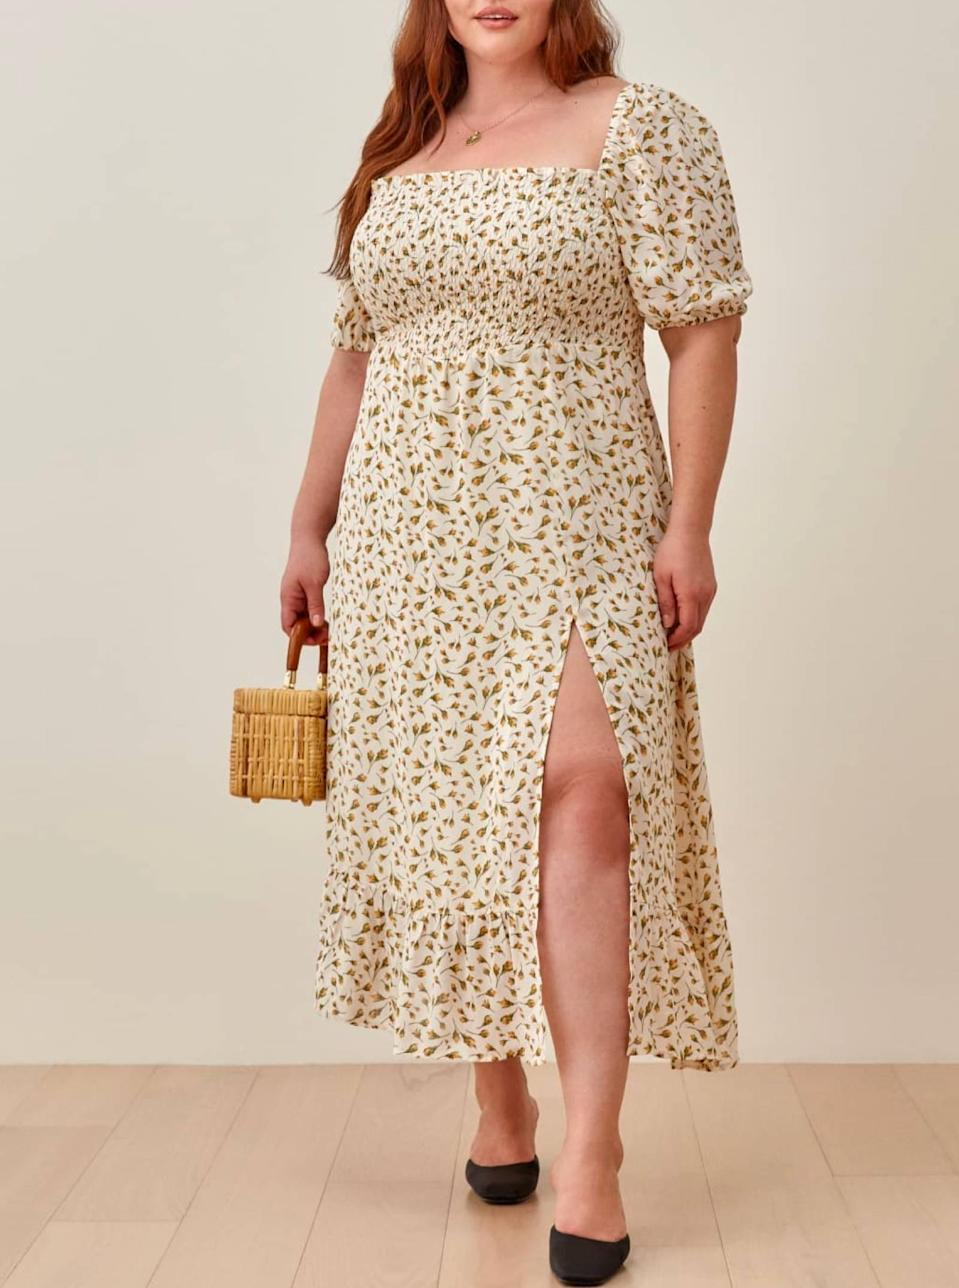 """$248, Reformation. <a href=""""https://www.thereformation.com/products/meadow-dress-es?"""" rel=""""nofollow noopener"""" target=""""_blank"""" data-ylk=""""slk:Get it now!"""" class=""""link rapid-noclick-resp"""">Get it now!</a>"""